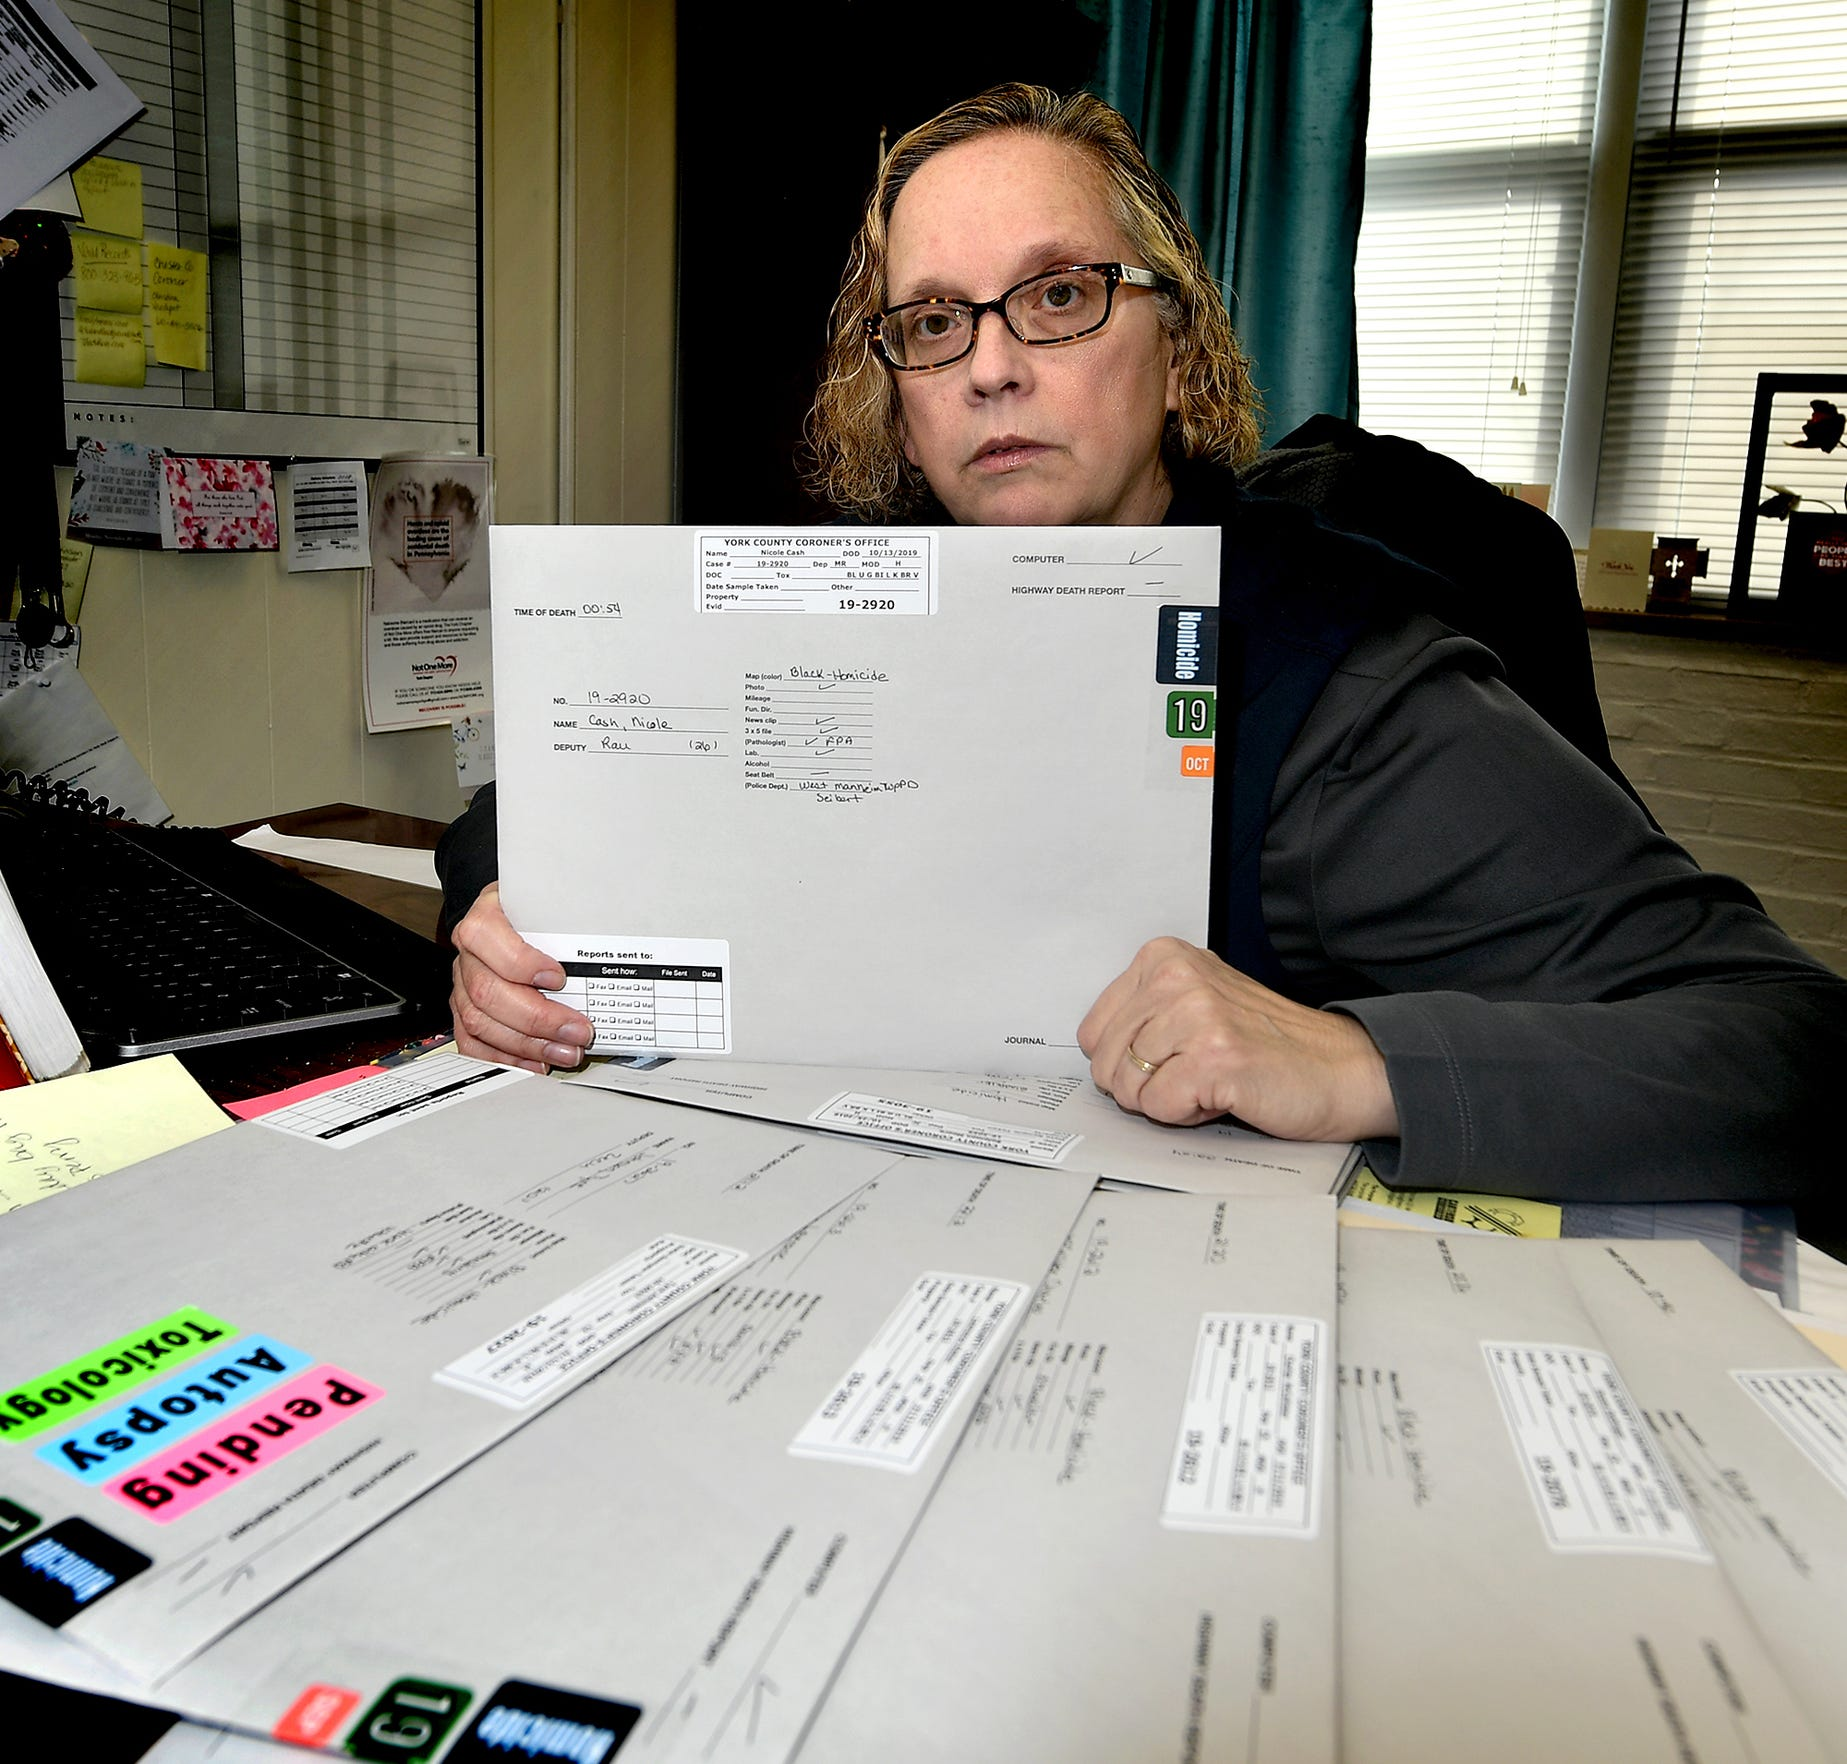 York County Coroner Pam Gay poses with some of the year's homicide reports at her office Thursday, Jan. 2, 2020. There were 16 homicides in York City in 2019. Bill Kalina photo